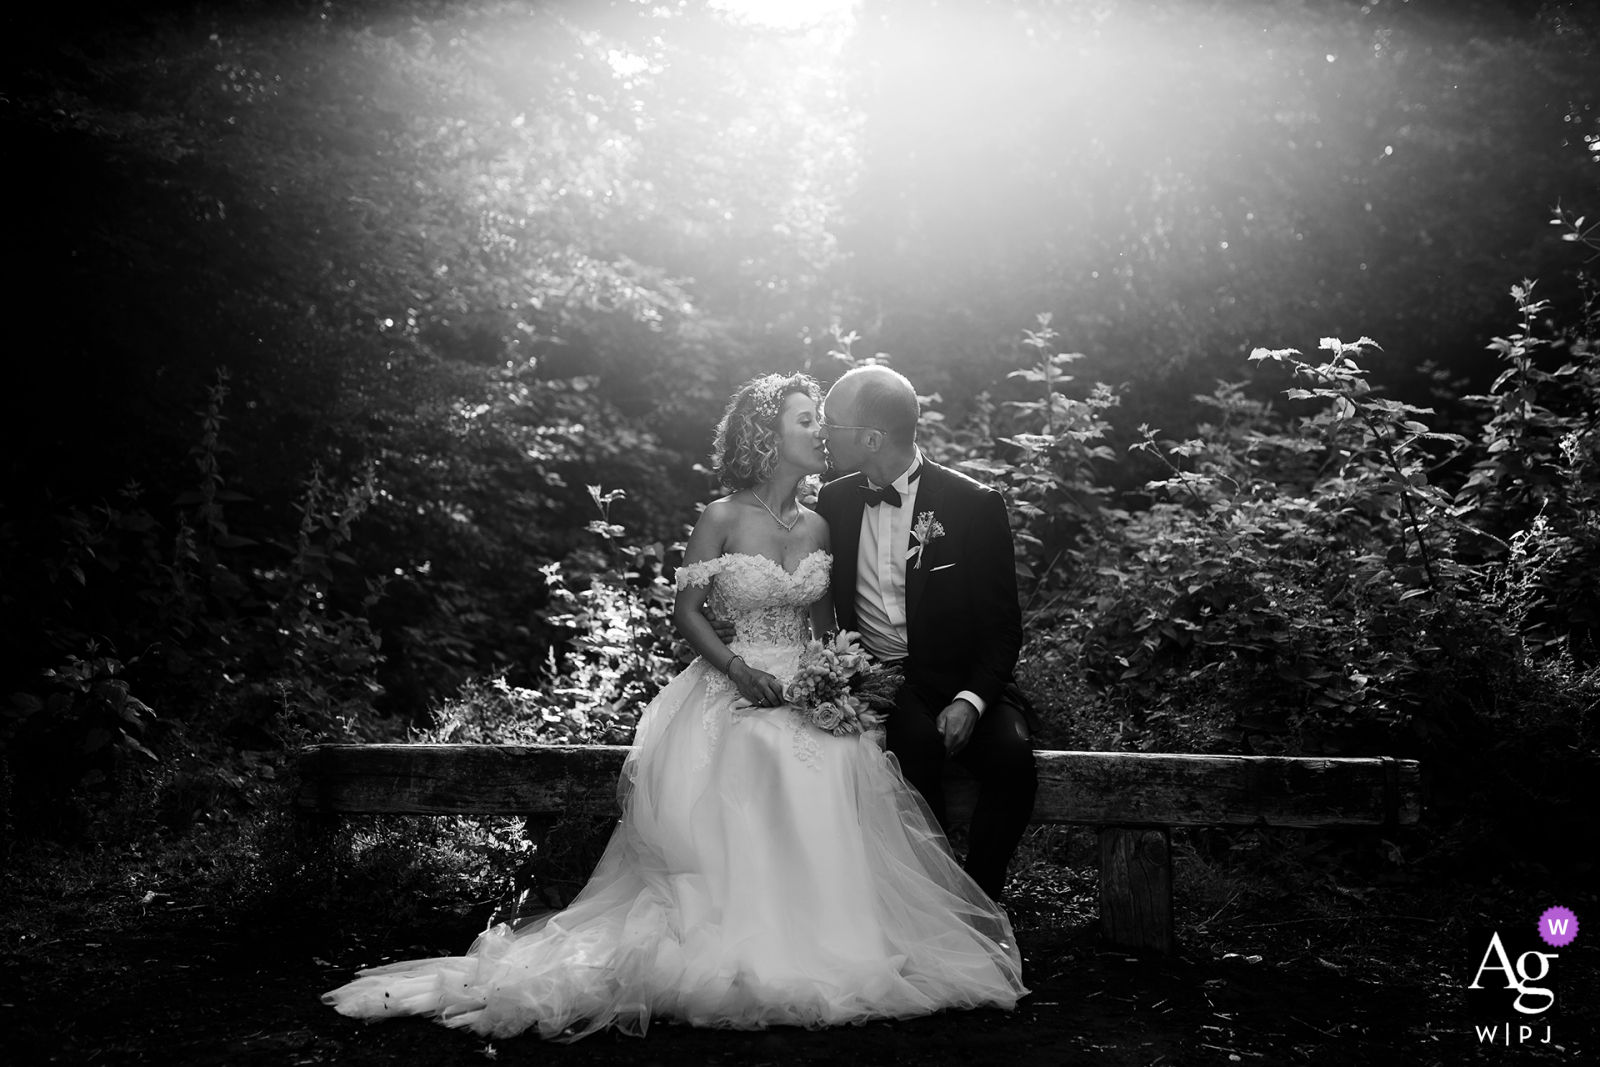 Istanbul wedding portrait in black and white of the bride and groom sitting upon a bench